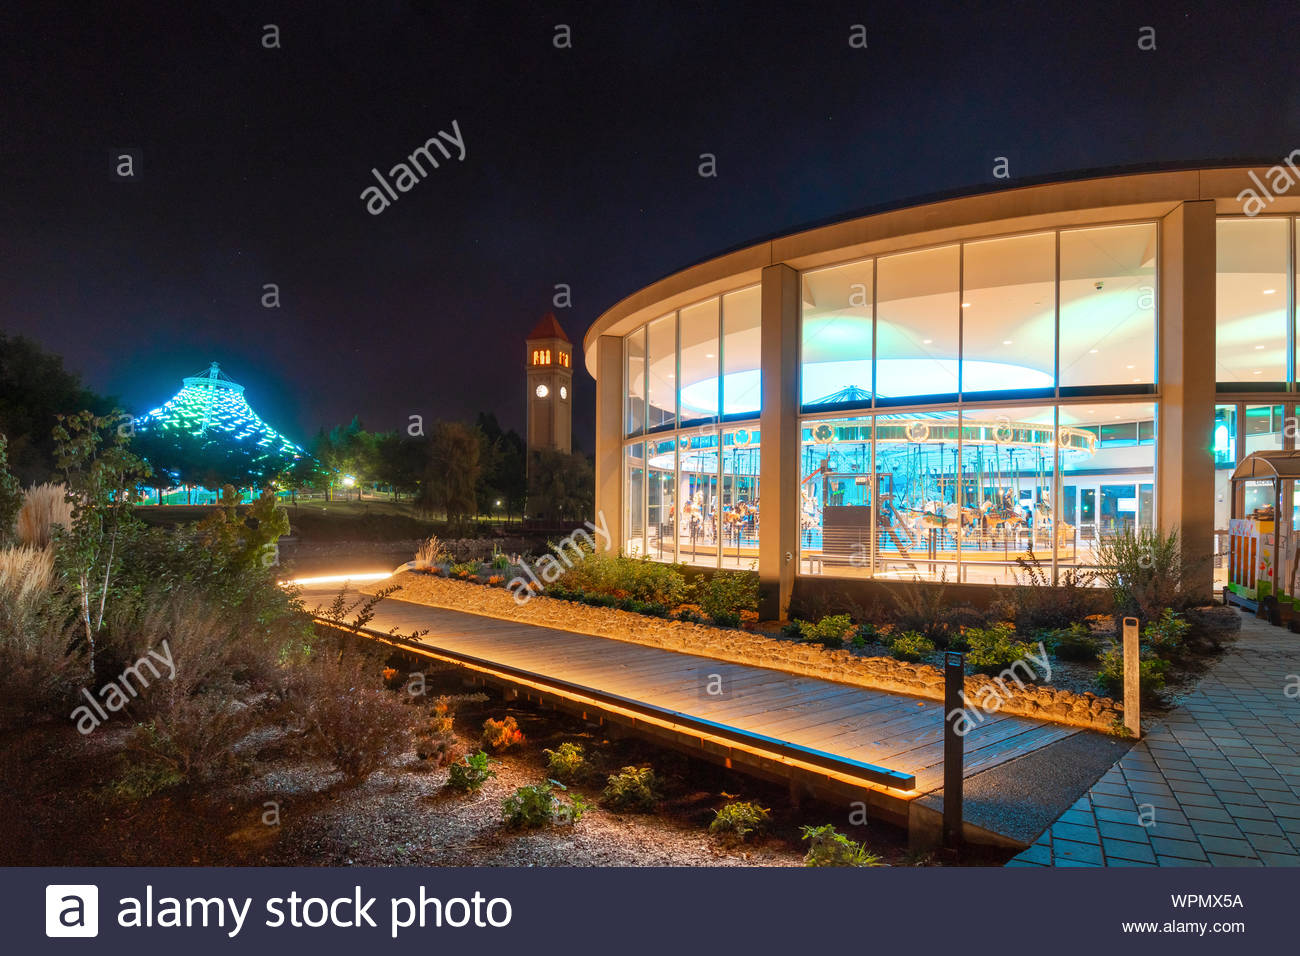 The illuminated Looff Carousel shines with the newly refurbished Spokane Pavilion in the distance in Spokane Washington's Riverfront Park Stock Photo